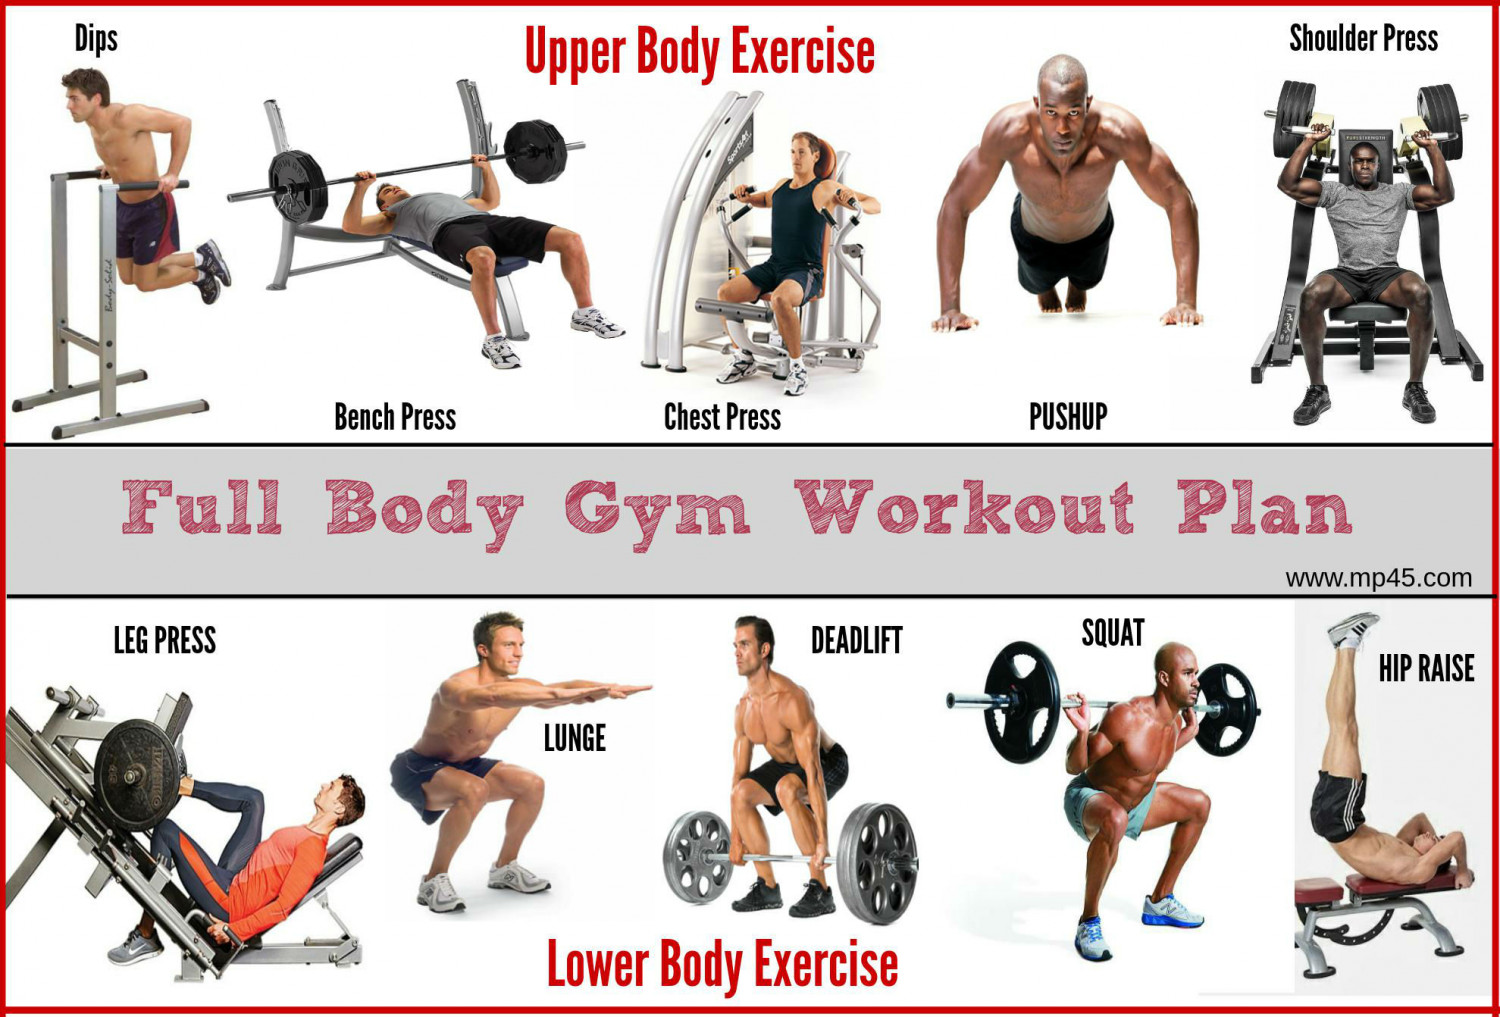 Gym Workout Chart For Chest For Men Convenient 7 Day Full Body Workout Plan My Fitness